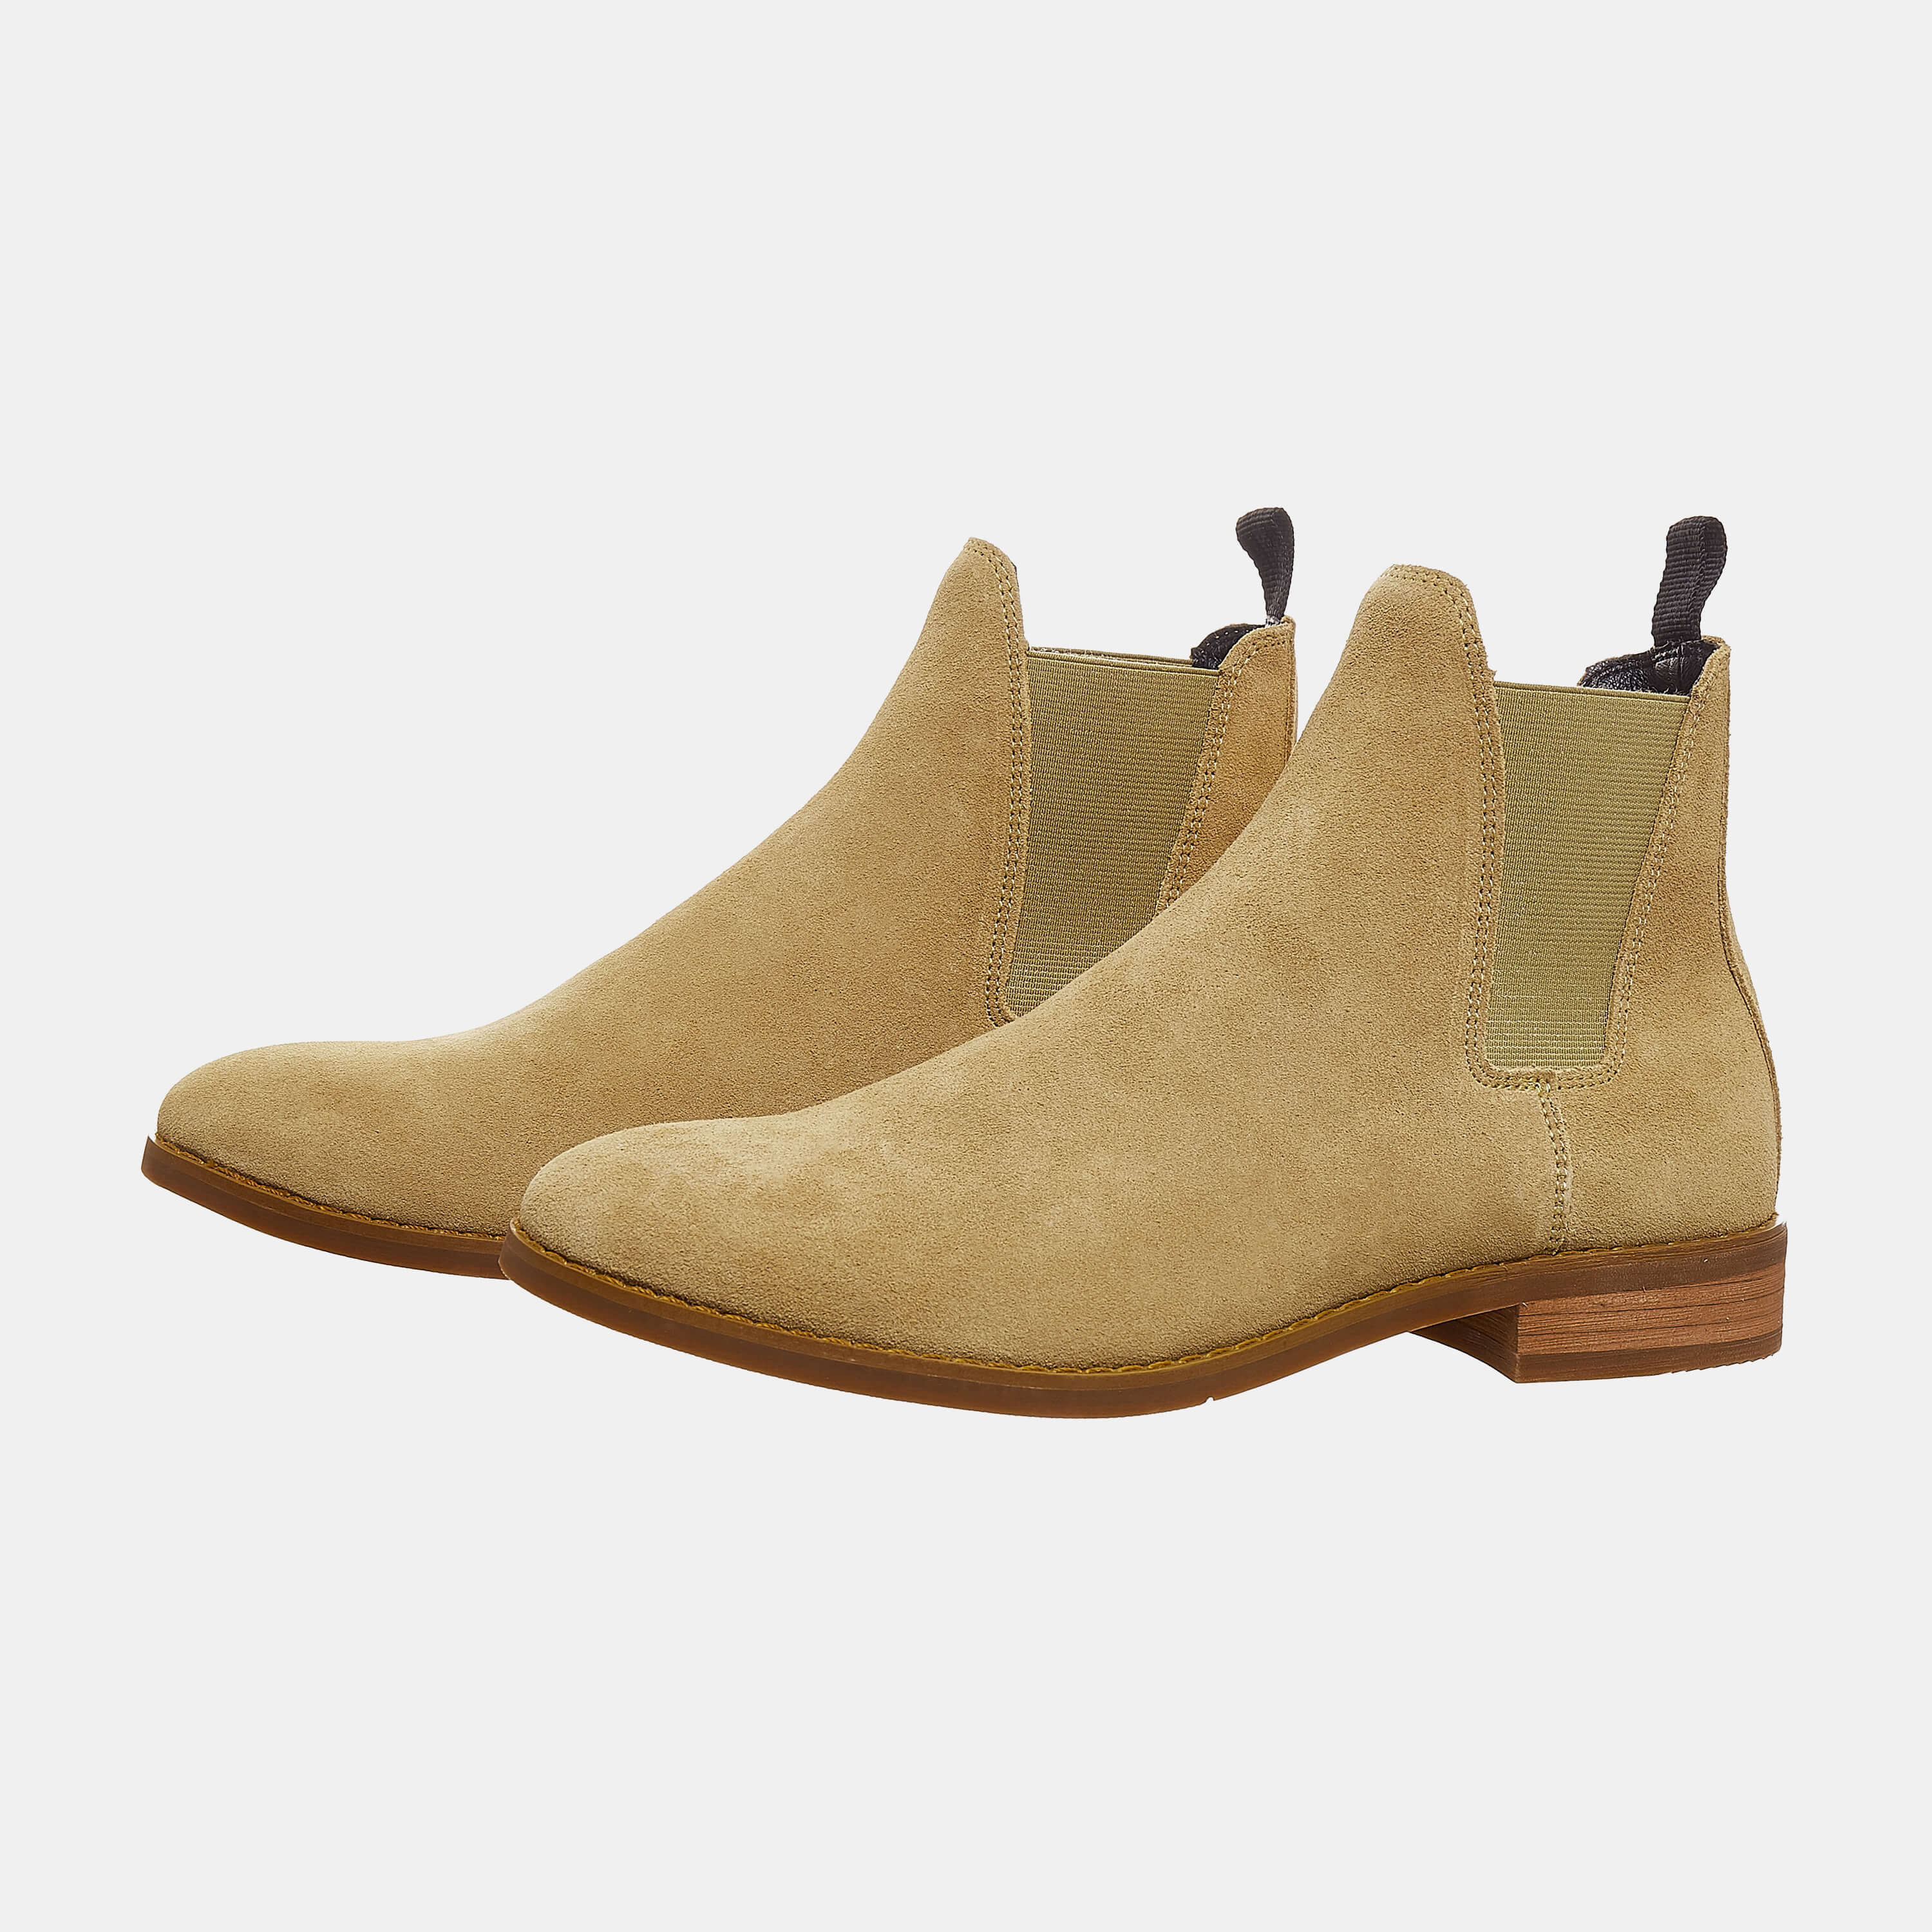 Suede Chelsea Boots In Tan Color Suede Chelsea Boots In Tan Color 5